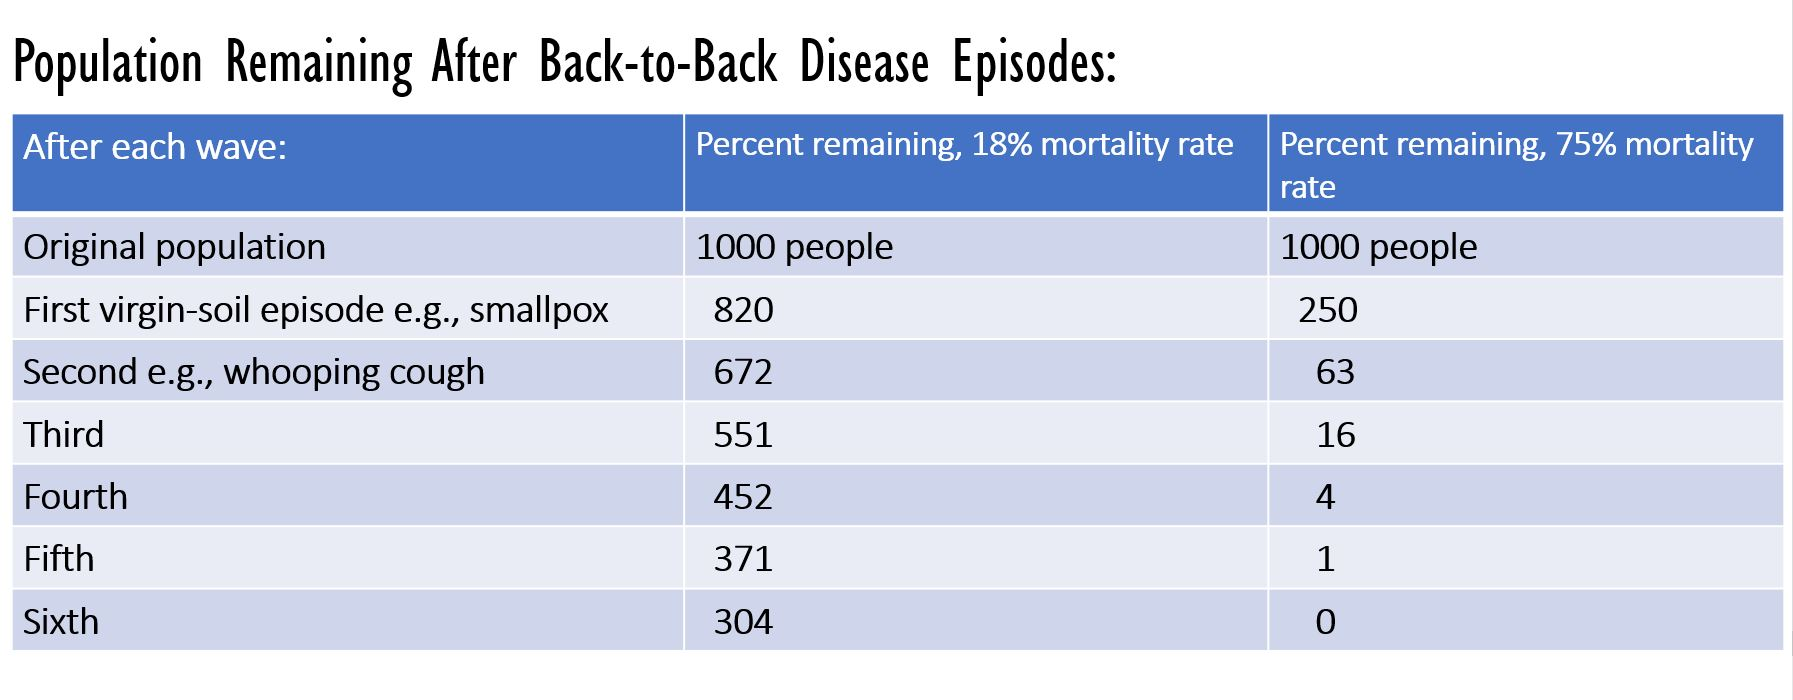 Population Remaining After Back-to-Back Disease Episodes: After each wave the % remaining would be smaller and smaller (18% and then 75% mortality rate).